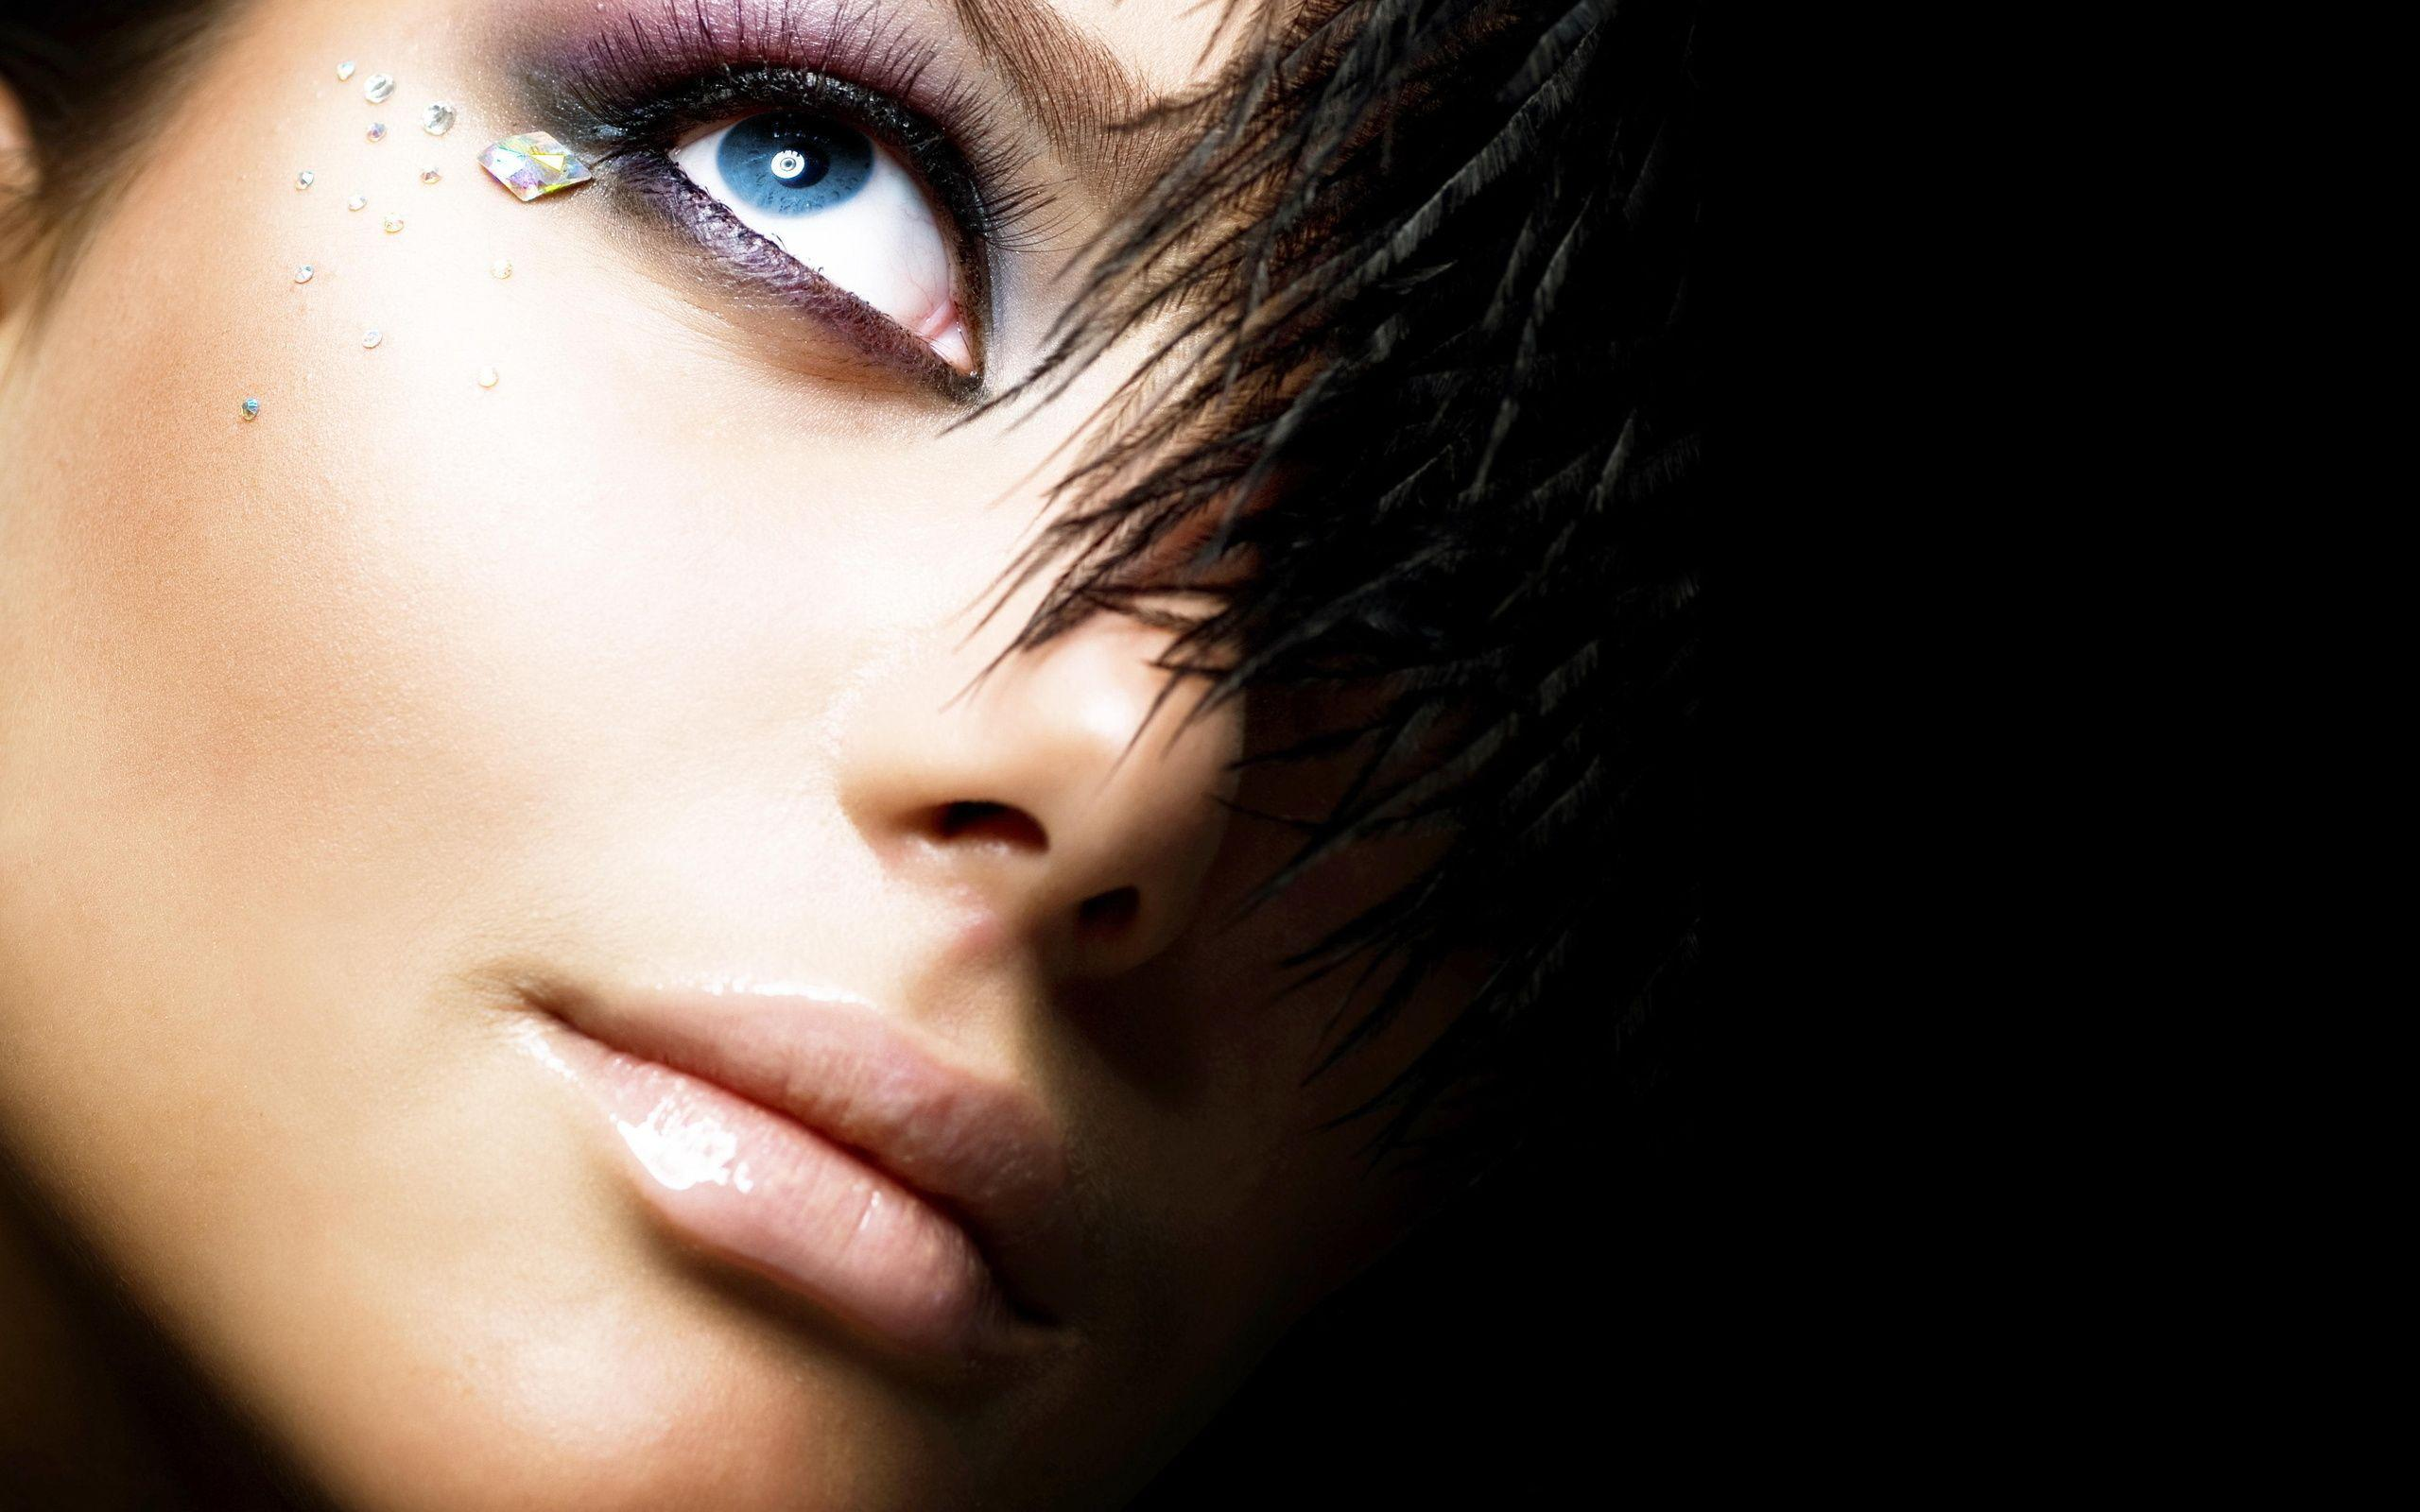 2560x1600 Feathers, Black Background, Girl, Rhinestones, Eyes ...